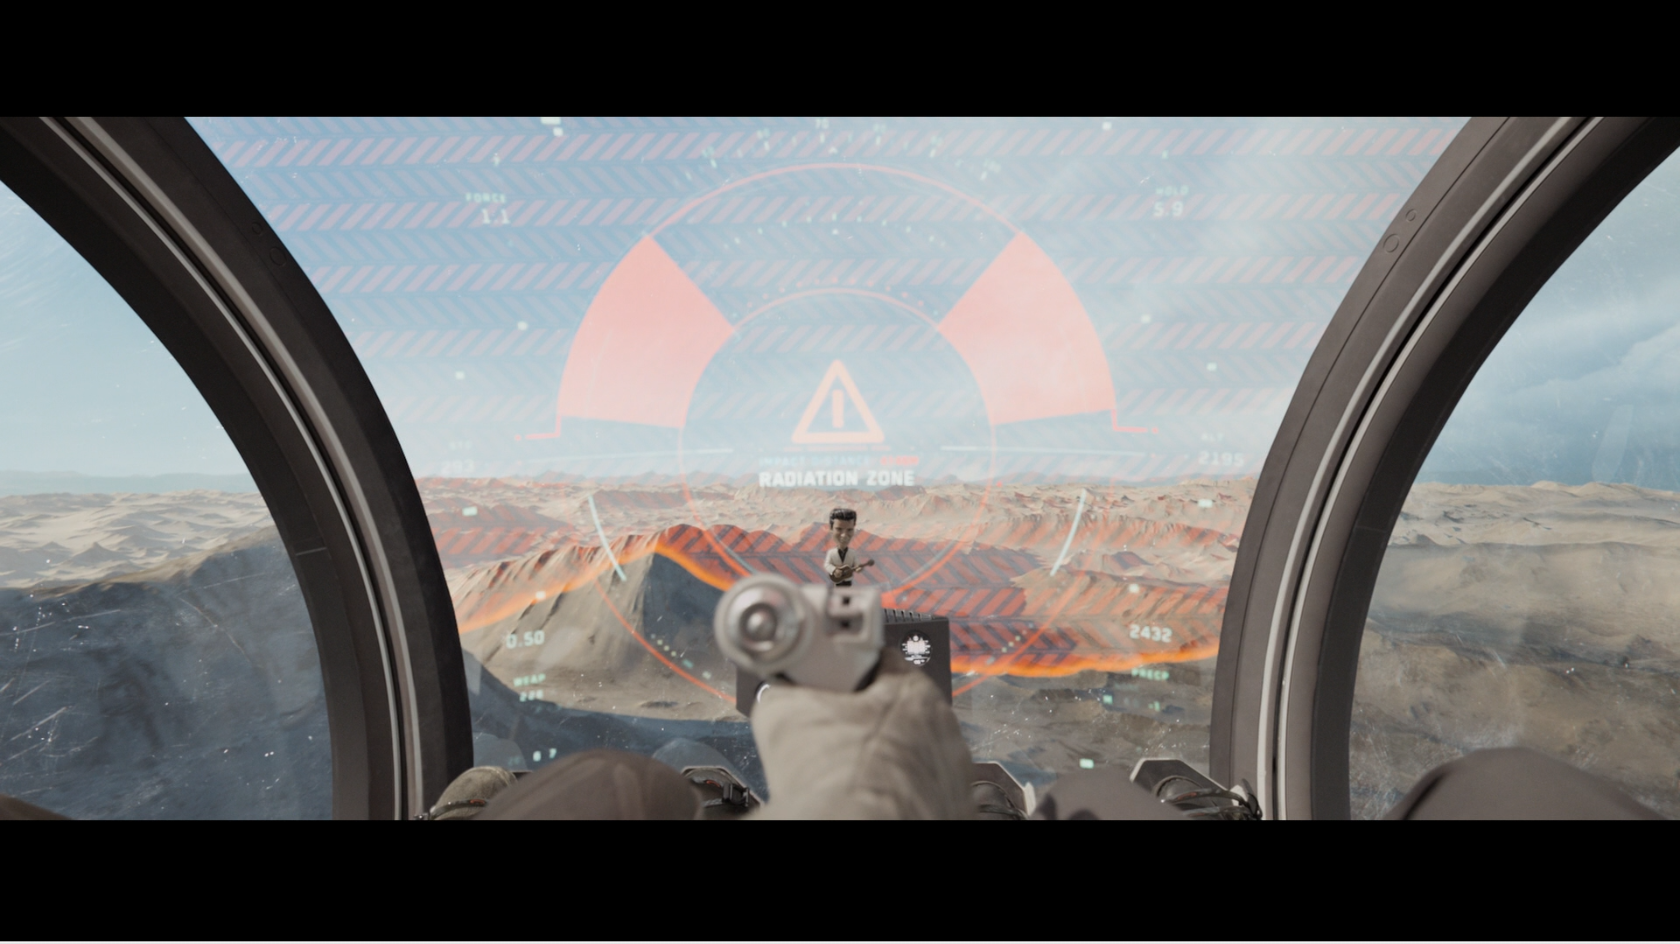 View from inside Jack from the movie Oblivions bubble ship showing a warning display on the shield of radiation zone